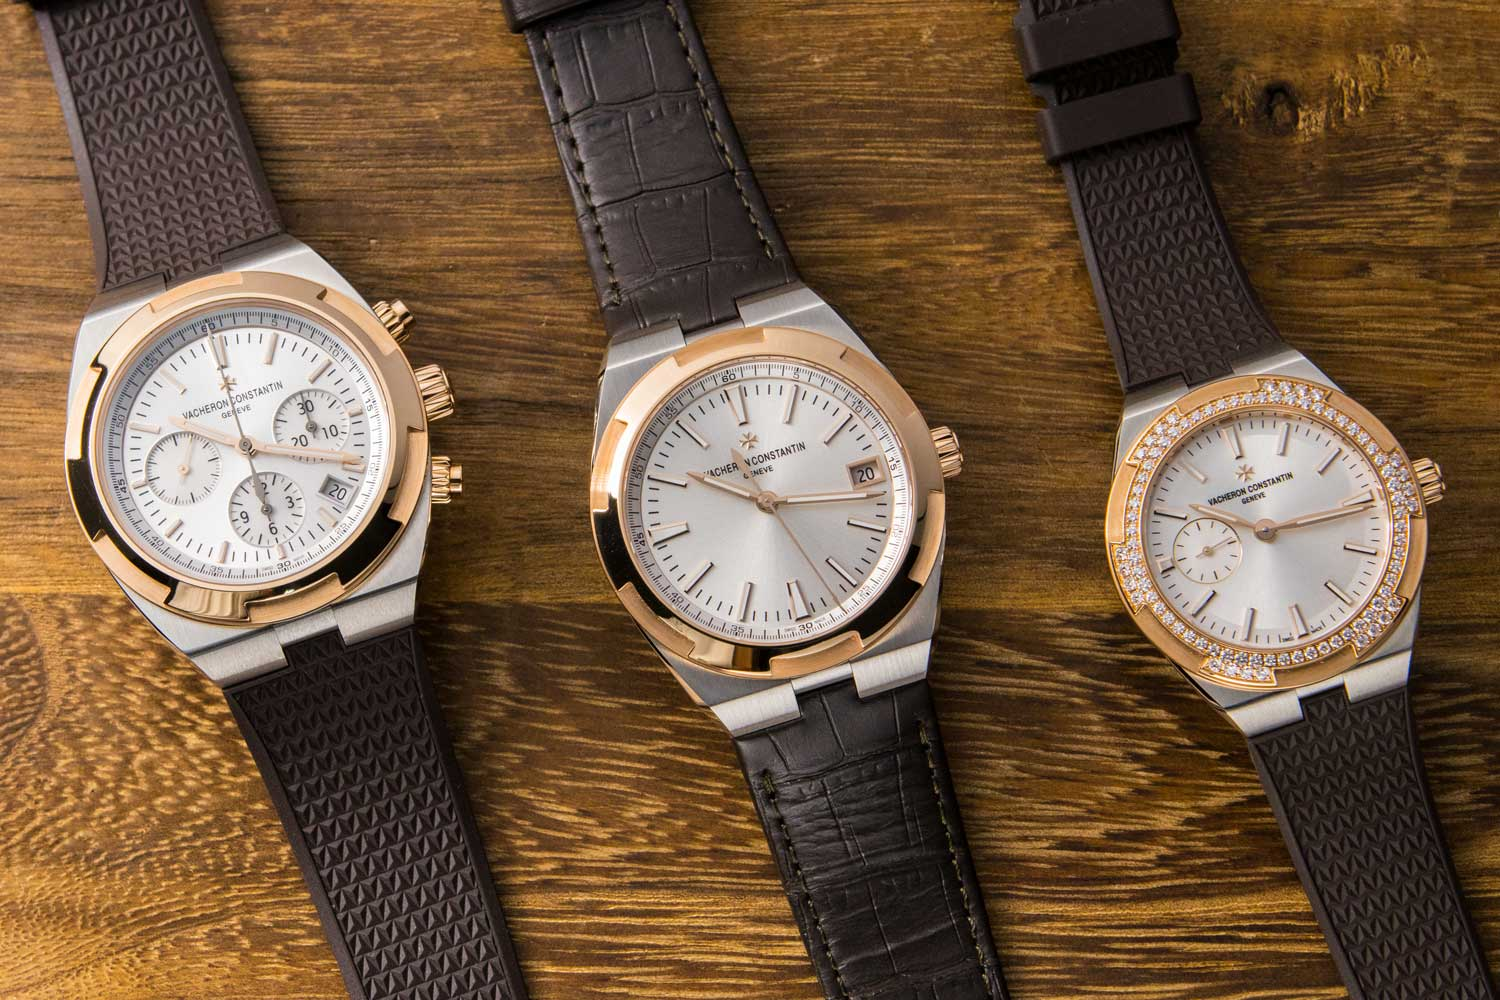 Vacheron Constantin's trio of two-tone watches in 2017